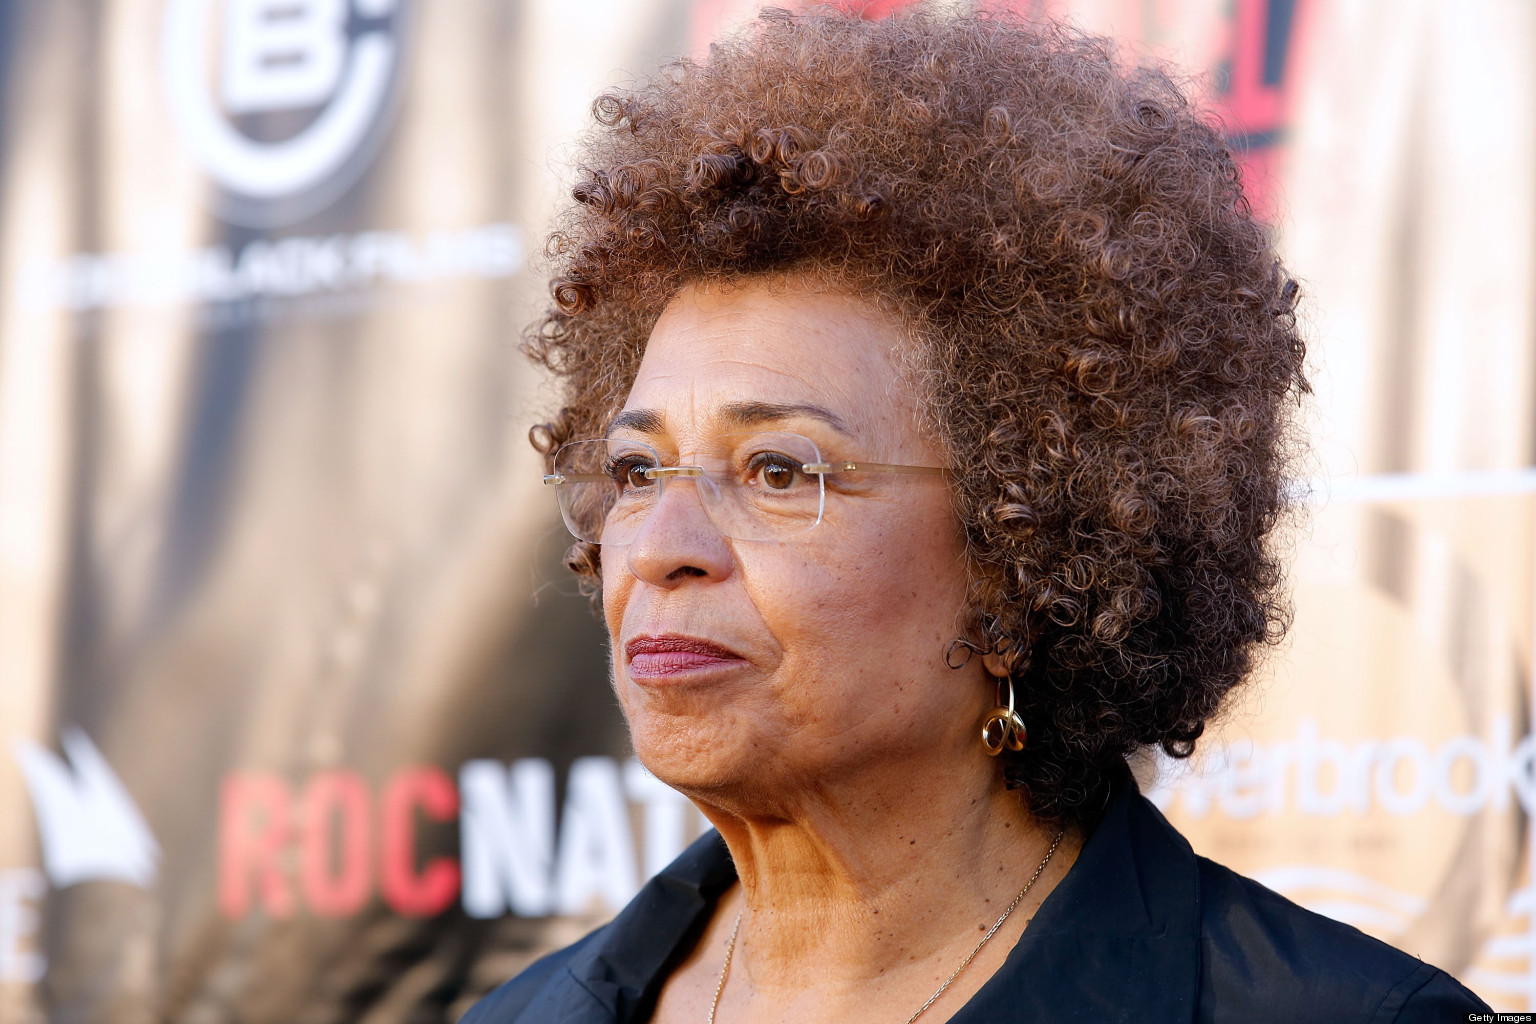 angela davis Angela davis facts: a scholar, activist, and professed communist, angela davis (born 1944) became a leading advocate of civil rights for blacks in the united states in august 1970 angela yvonne davis was catapulted into the national spotlight when s.